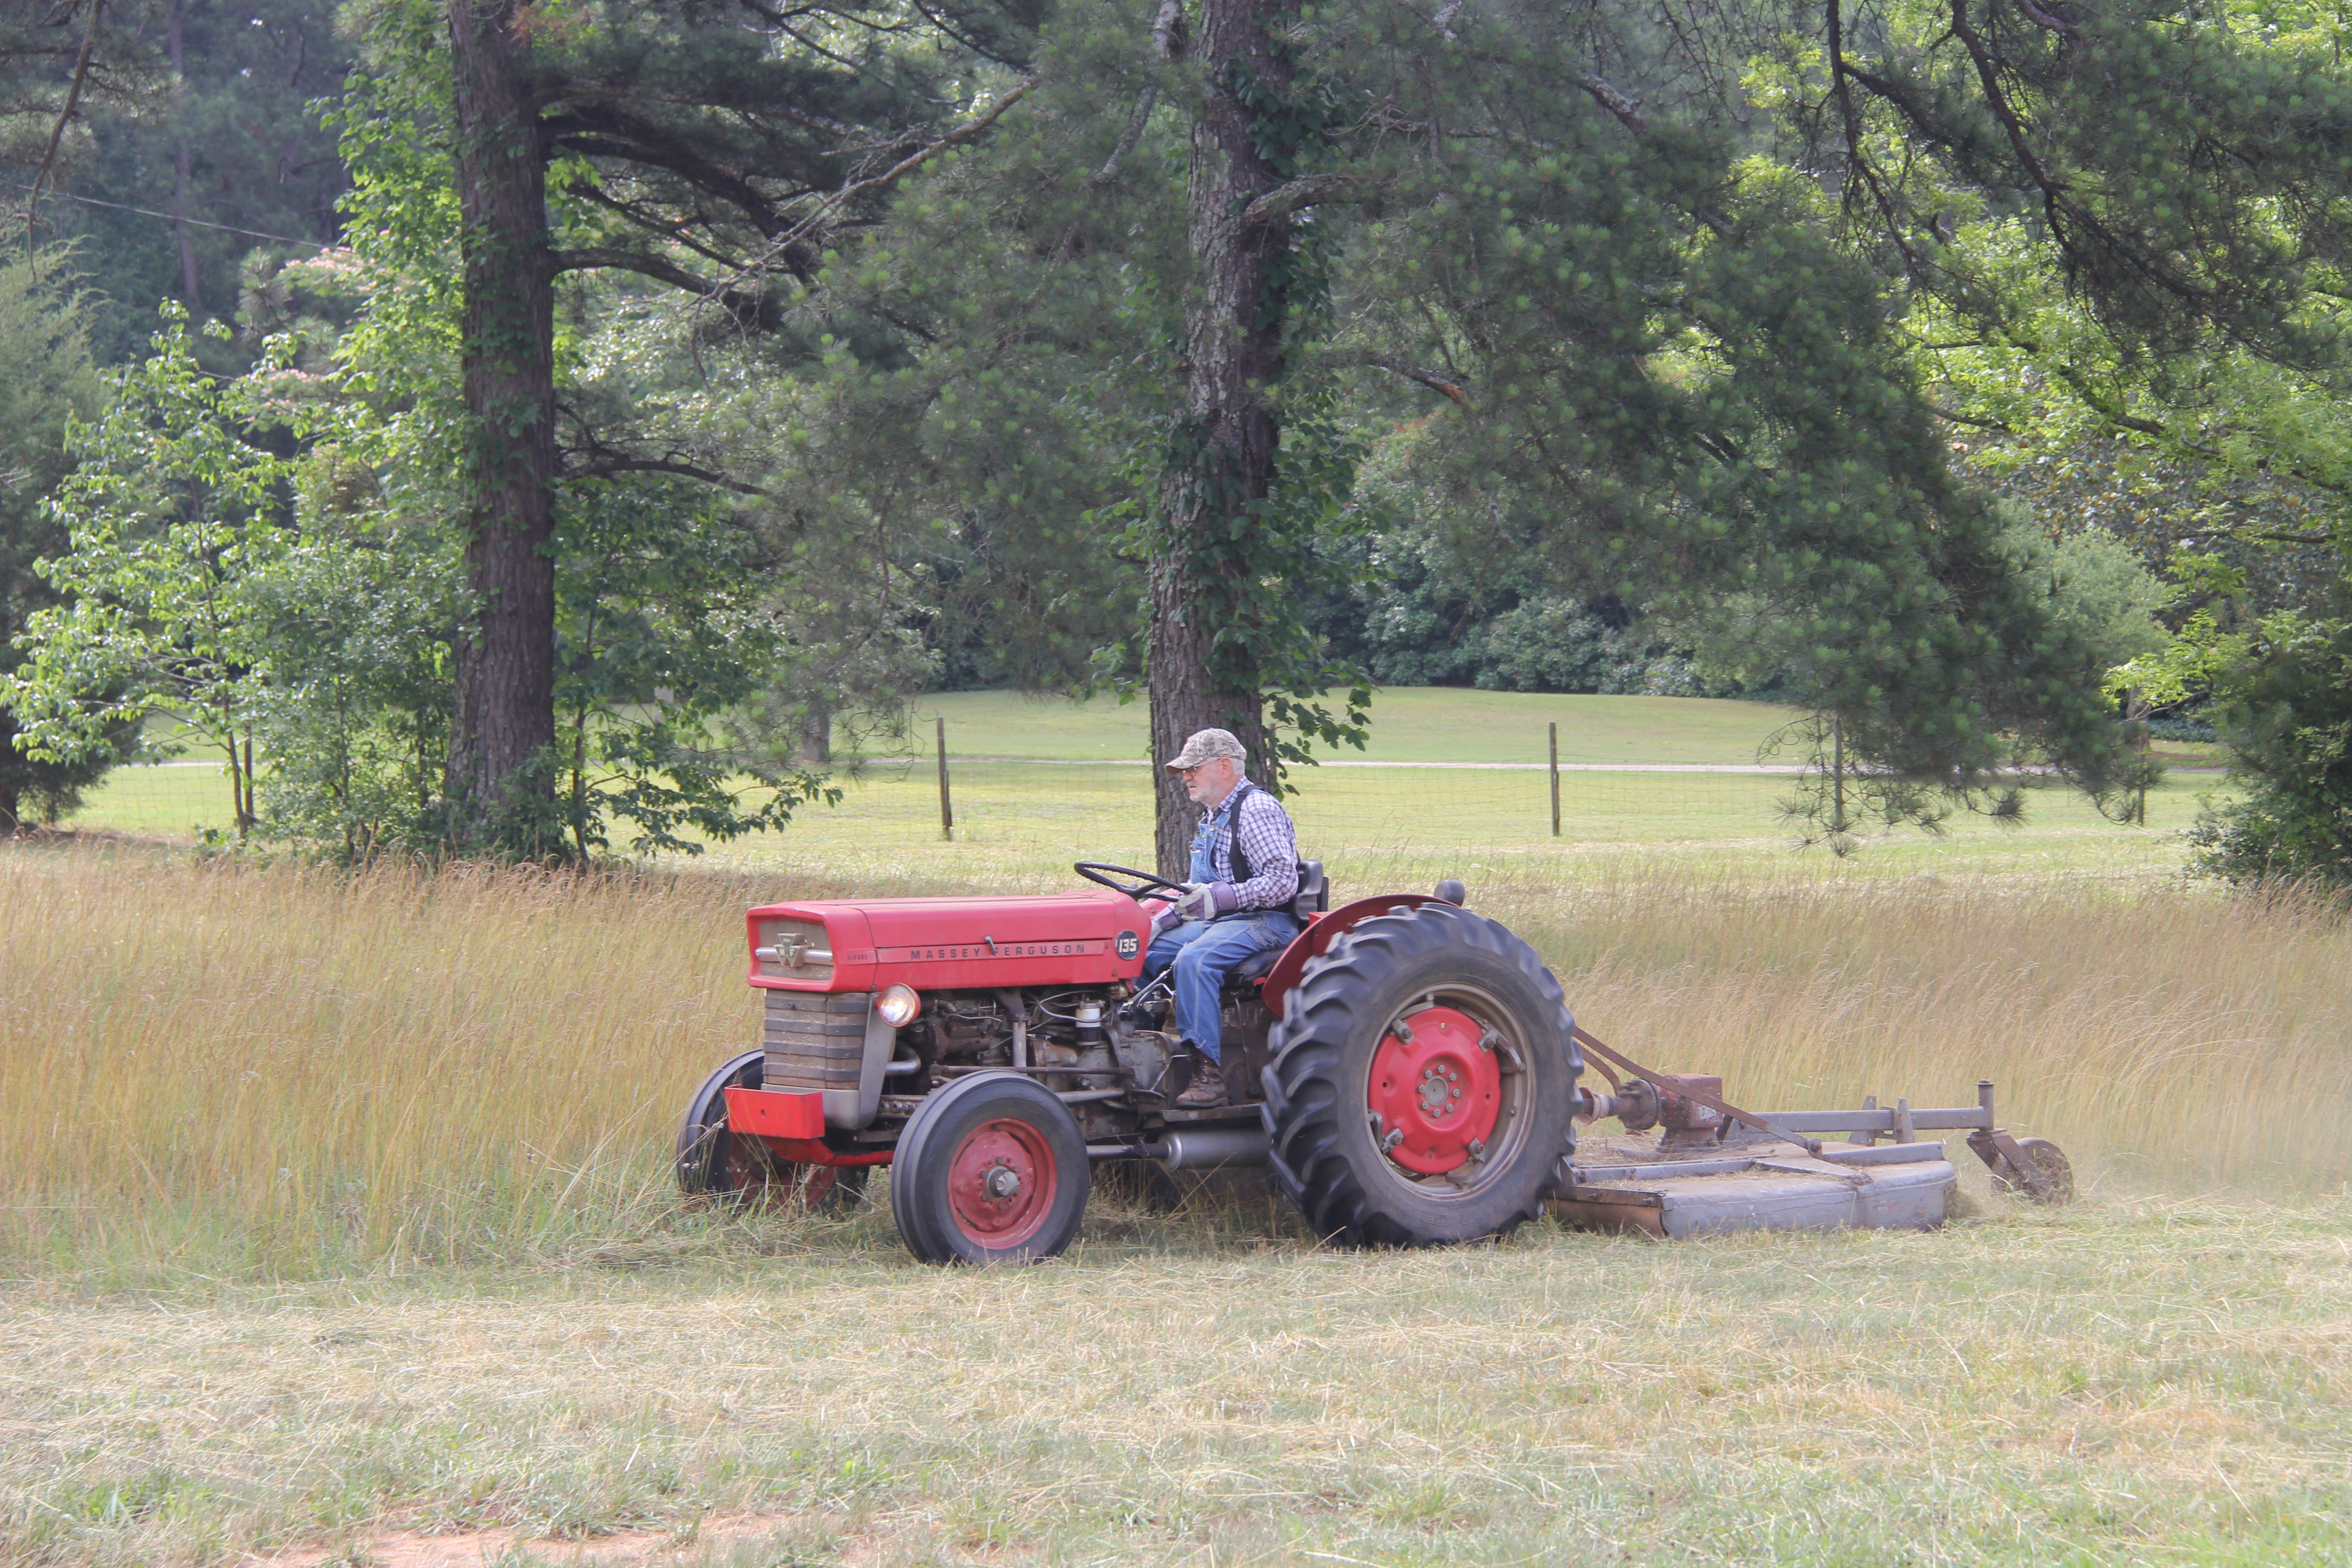 Small farmer James Cobb mows a field in Butts County, Ga.